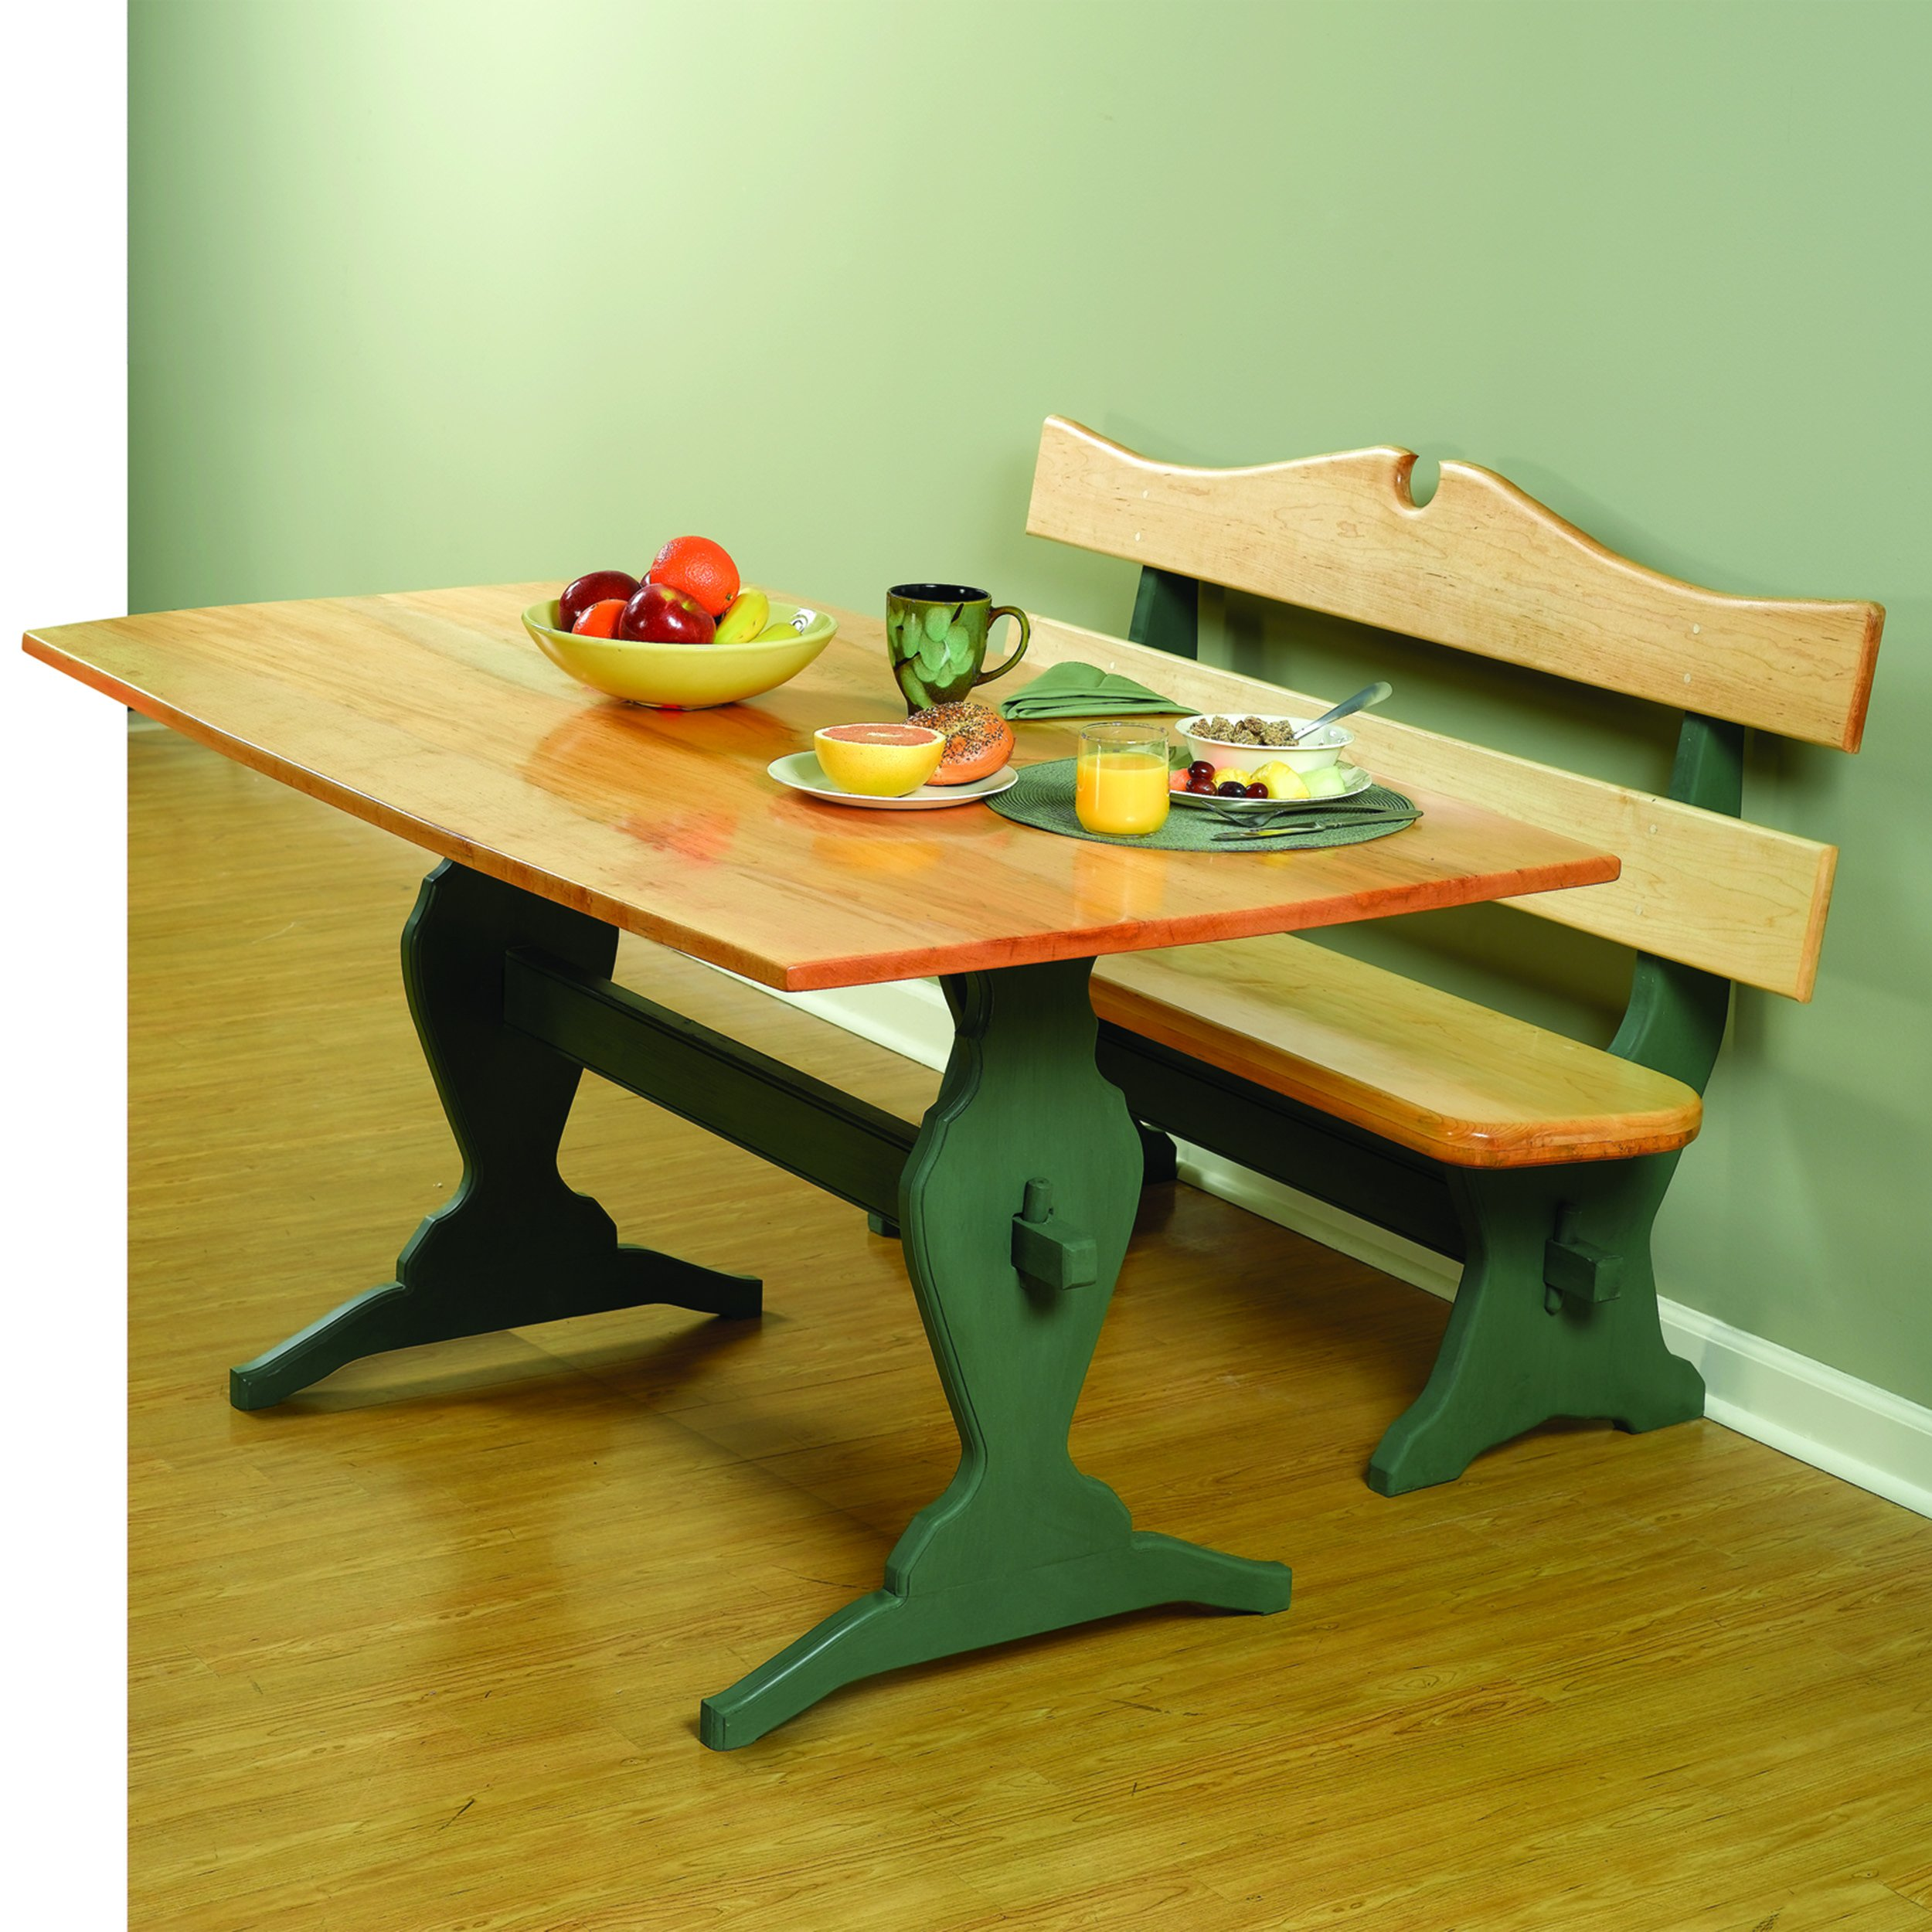 Woodworking Project Paper Plan to Build Trestle Table and Benches